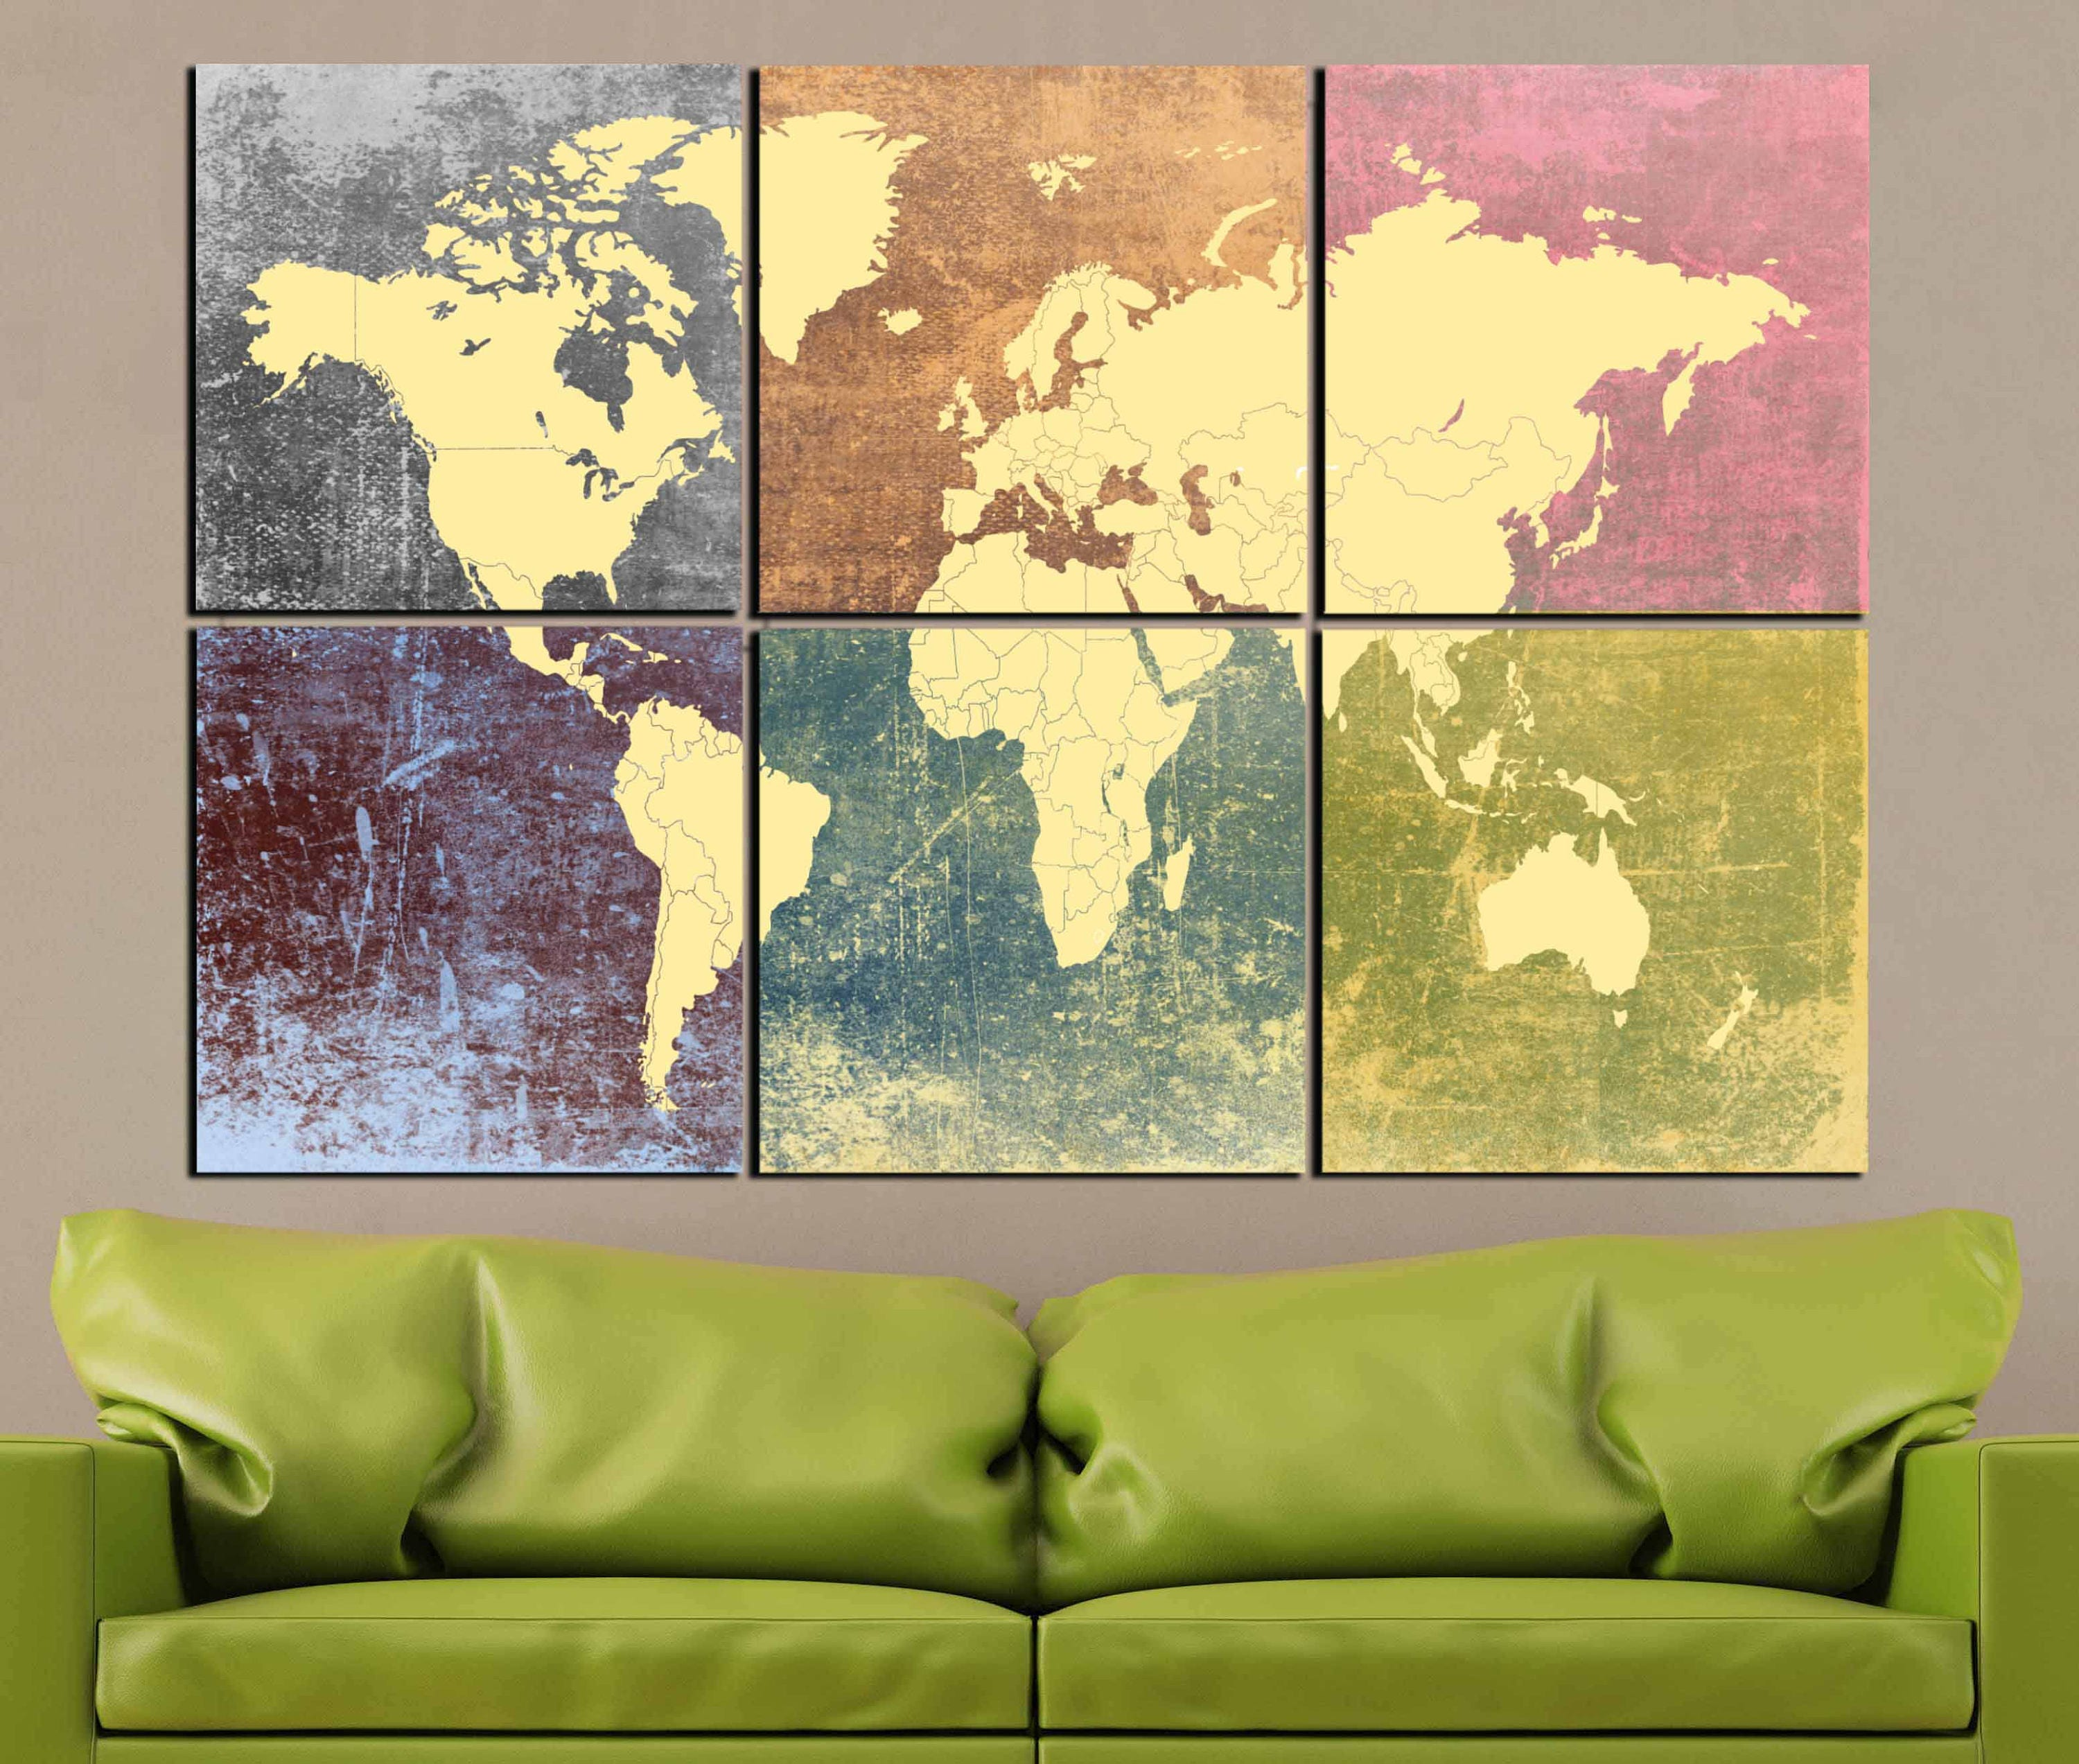 World Map Colorful Decorative 6 Canvas Panels,World Map Large Wall ...